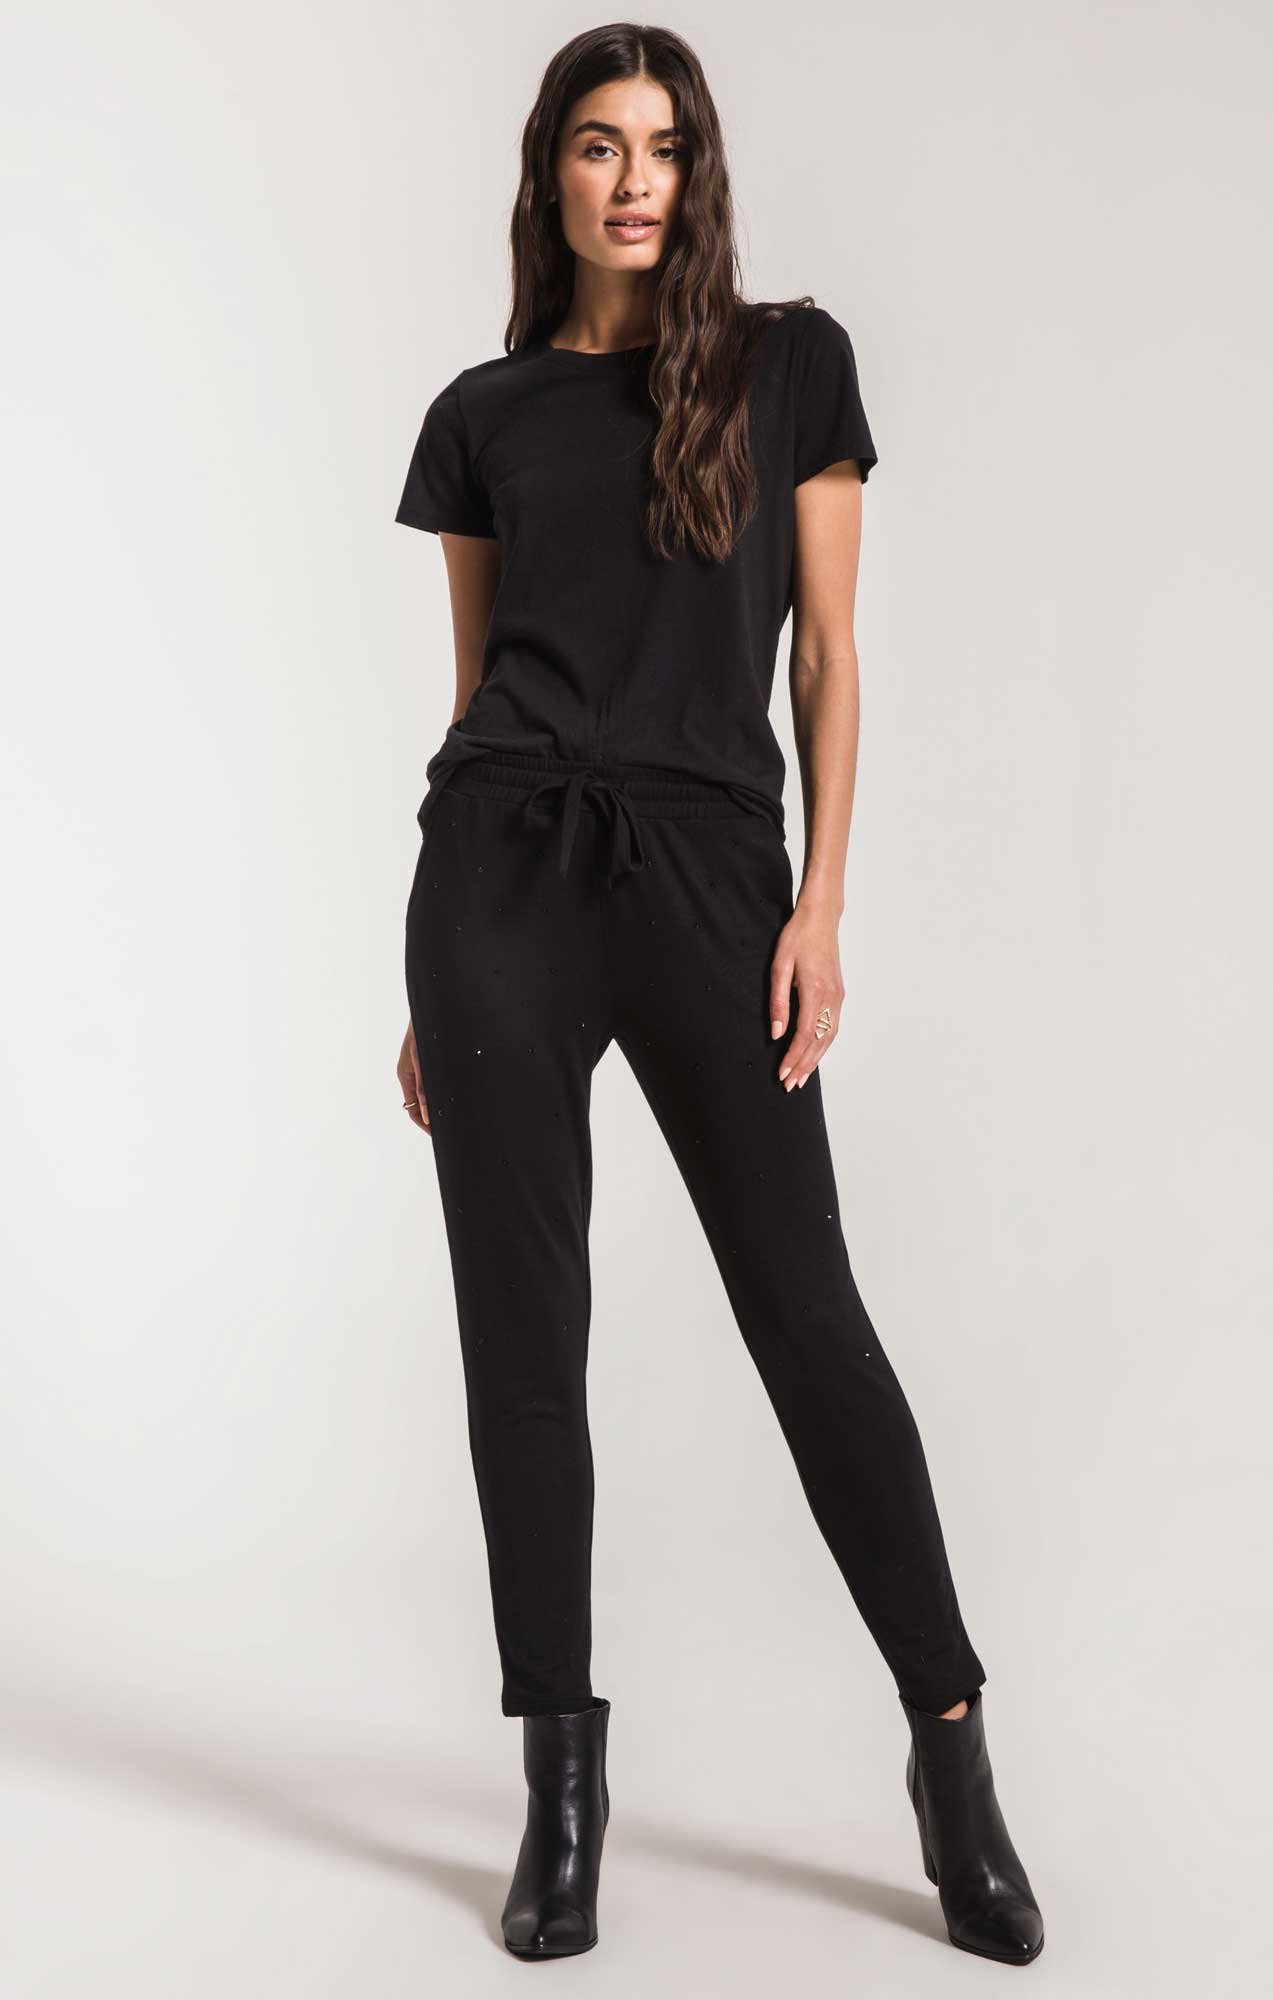 Pants The Rhinestone Jogger Pant Black